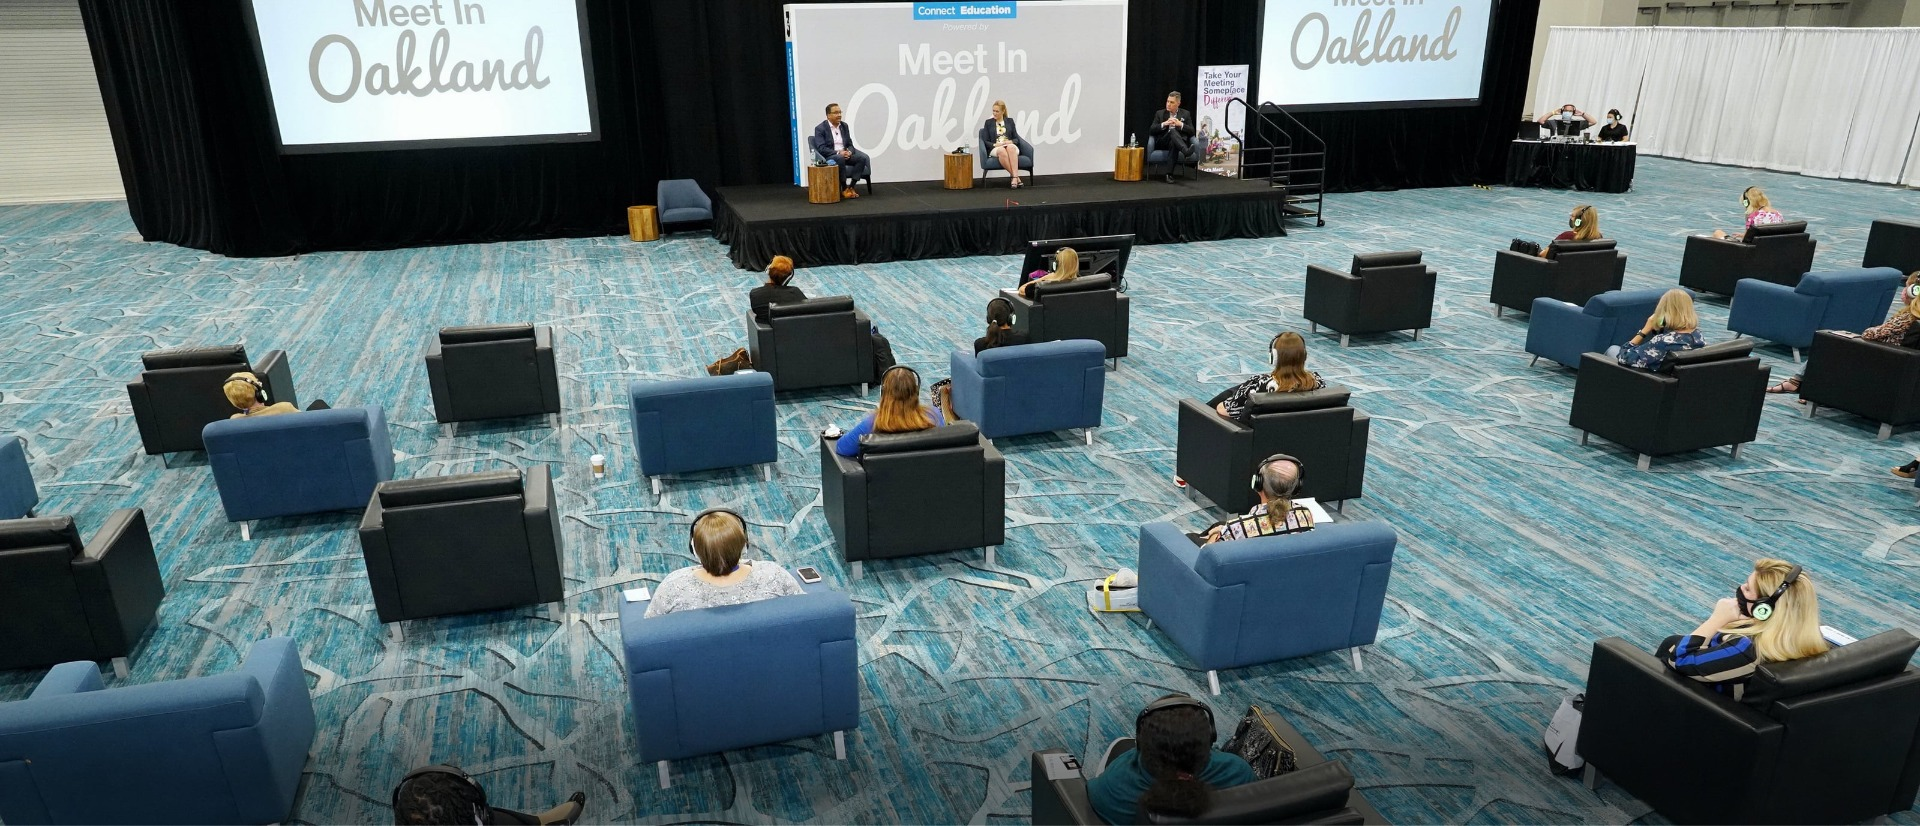 Blue and black chairs in socially distanced general session